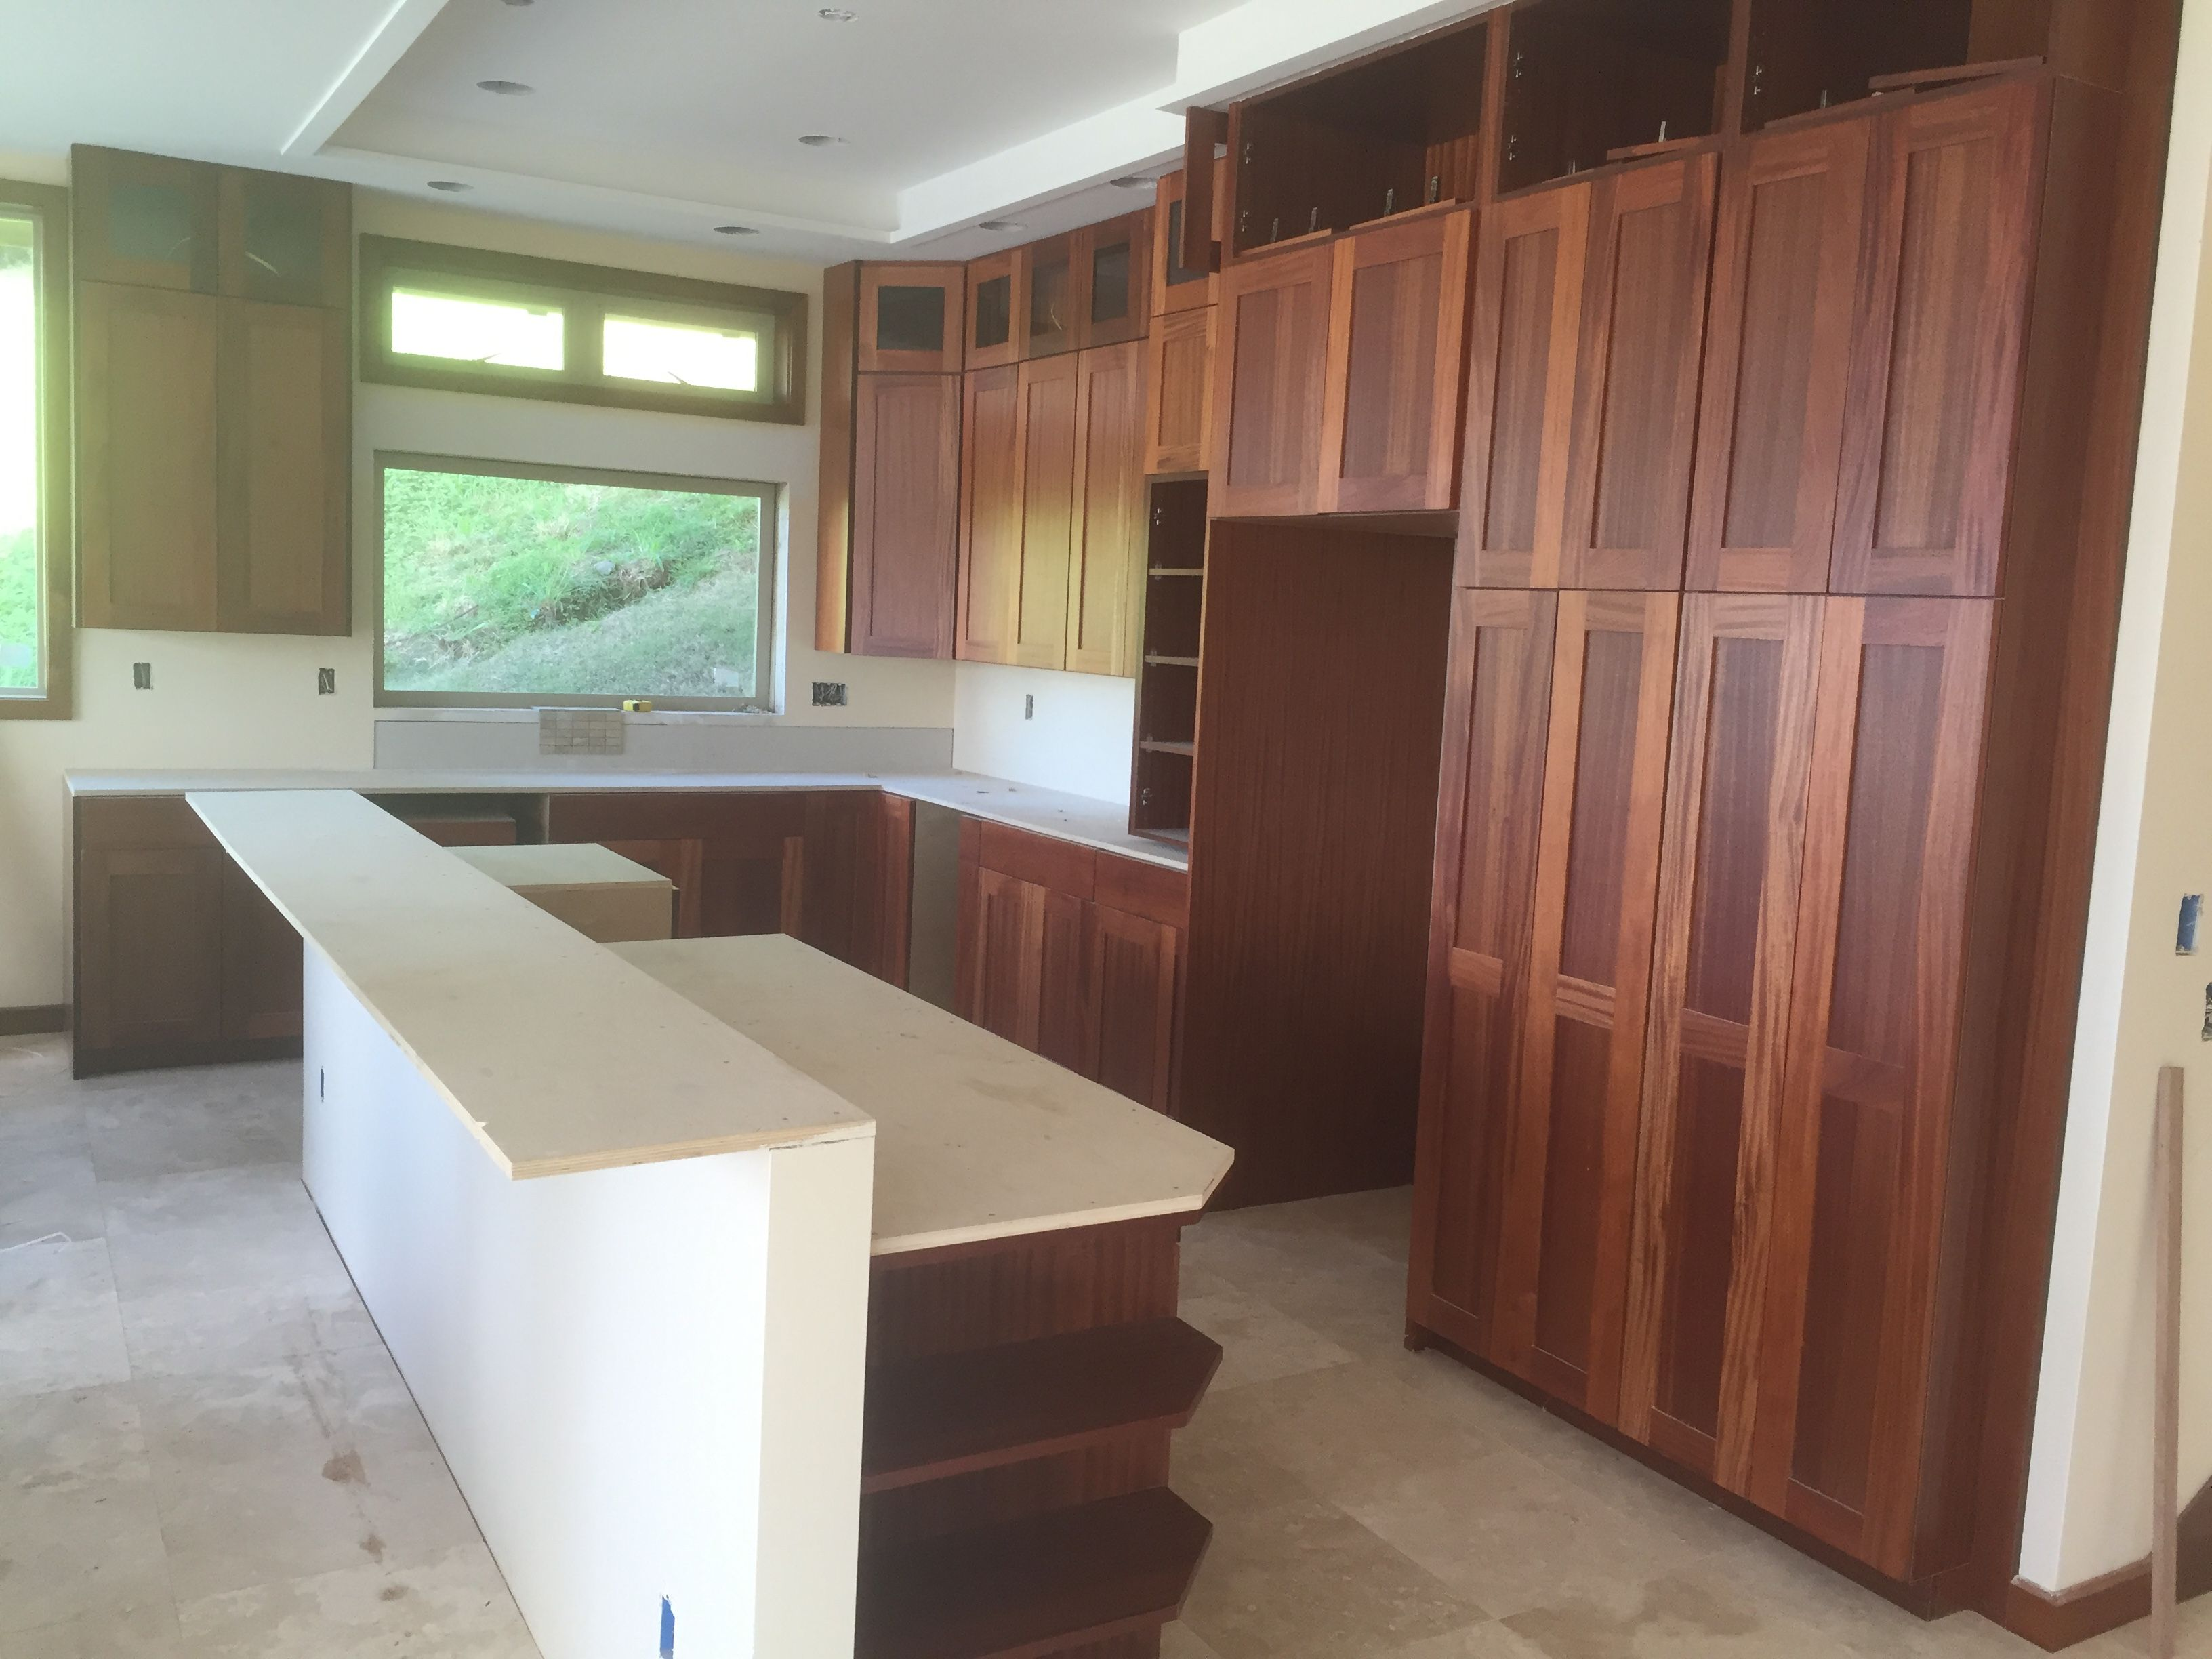 Hawaiian Islands · Kitchen Cabinets In Beautiful African Mahogany, Built By  Total Building Products. Countertops Going In